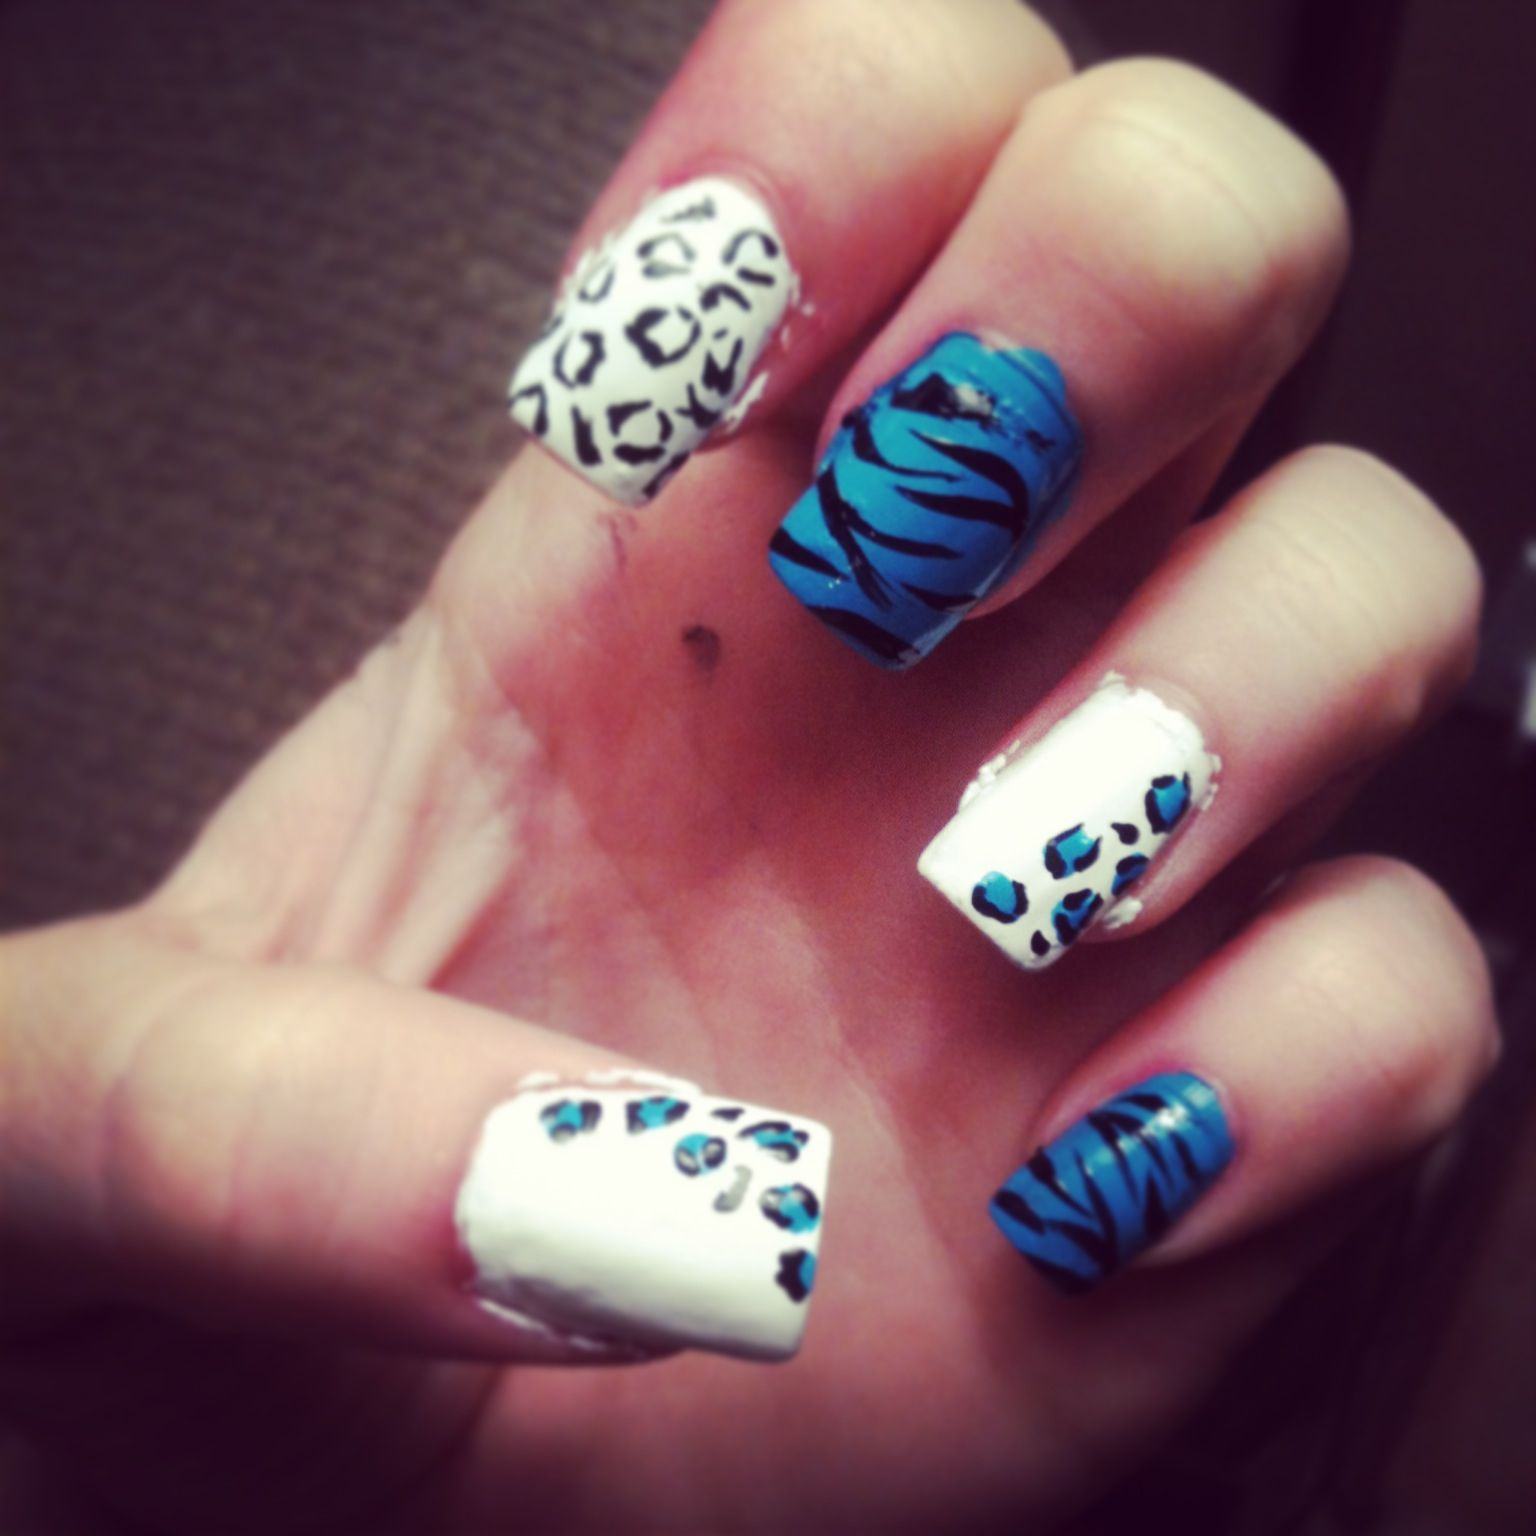 My attempt. Zebra cheetah print turquoise white nail design | Nails ...